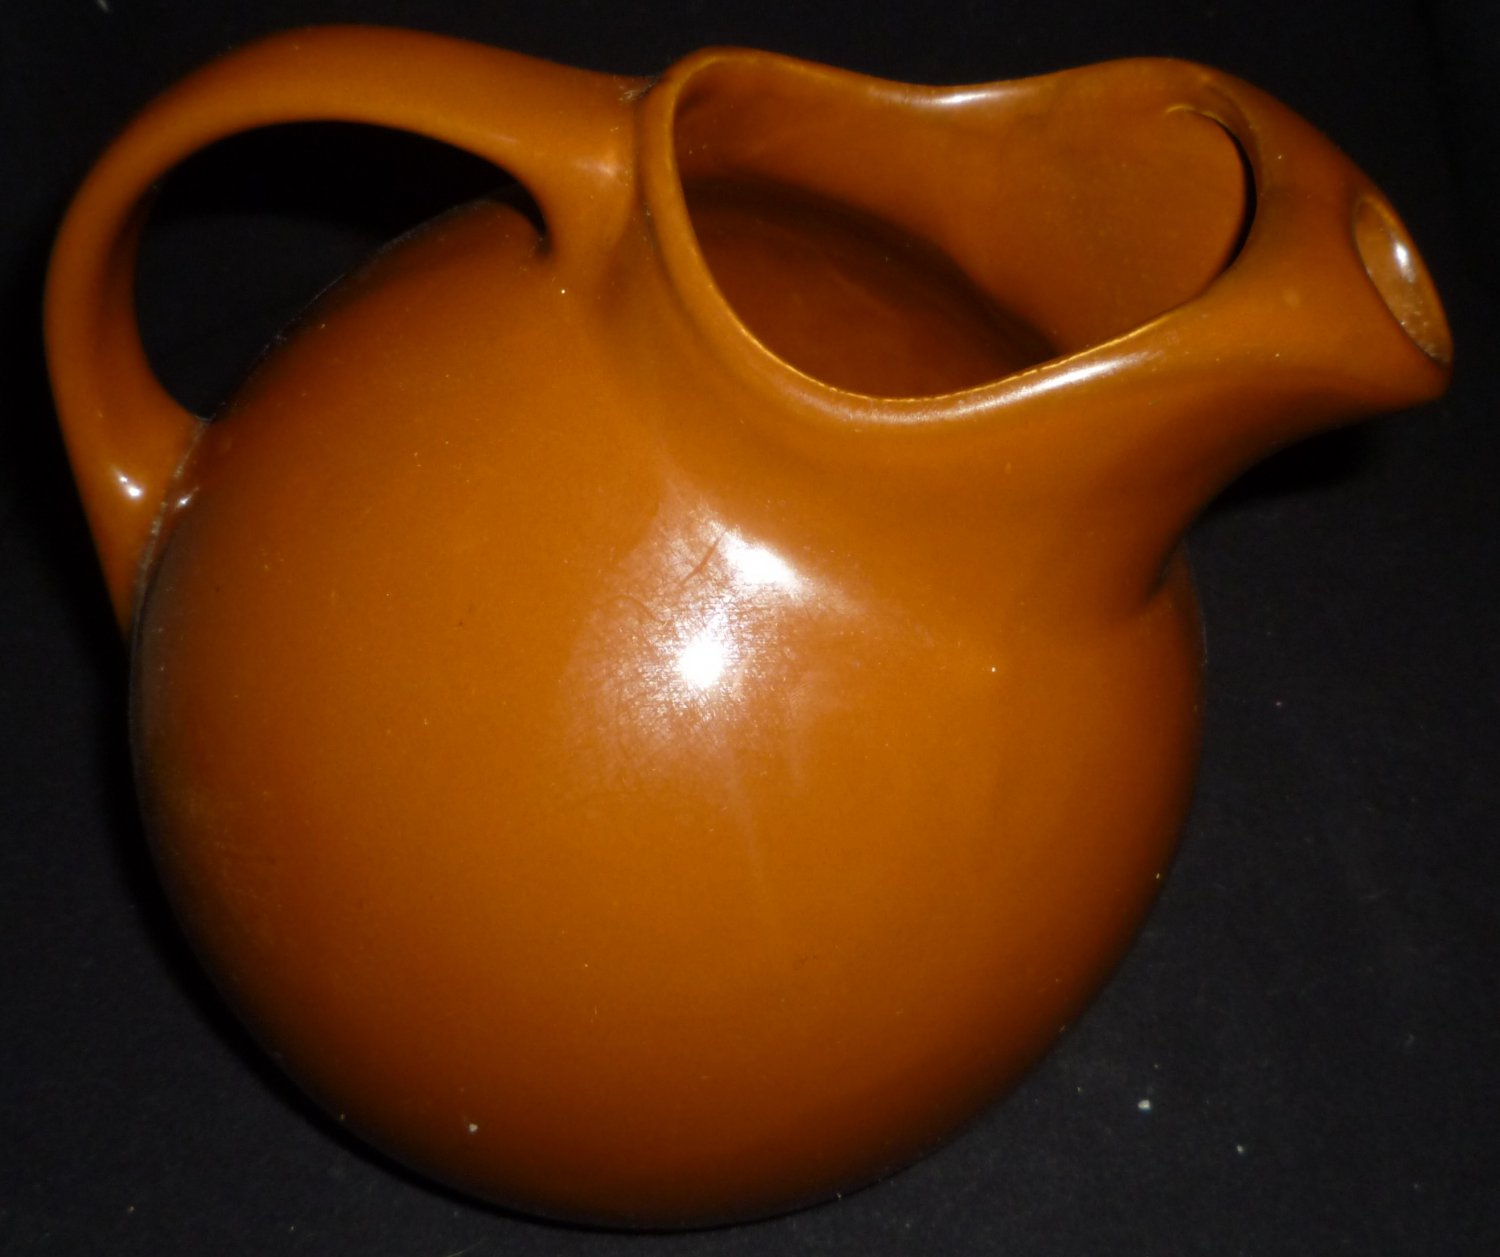 Water Pitcher Ceramic Vintage Hall Brown Ceramic Pottery Water Pitcher W Ice Catcher